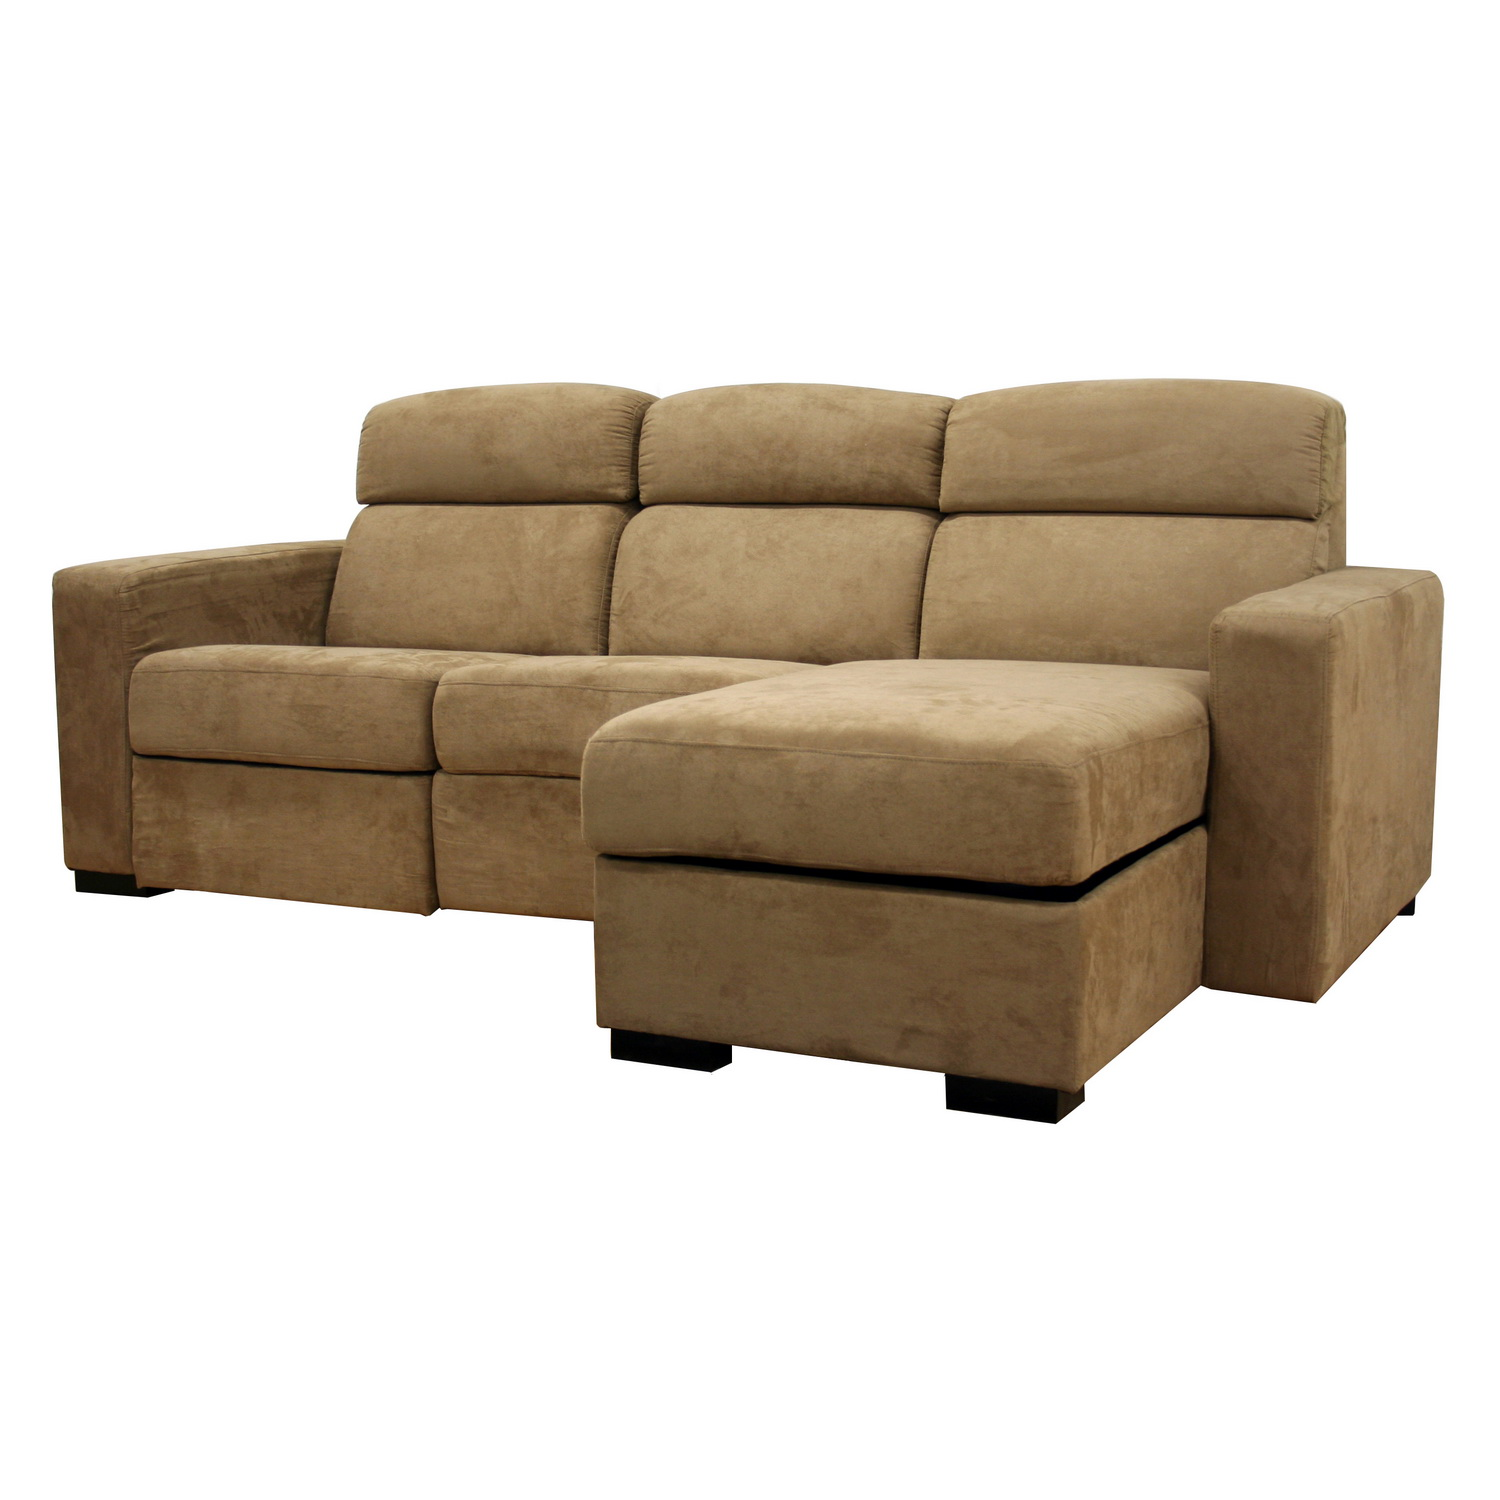 Sectional sofa with chaise recliner and sleeper Loveseat chaise sectional